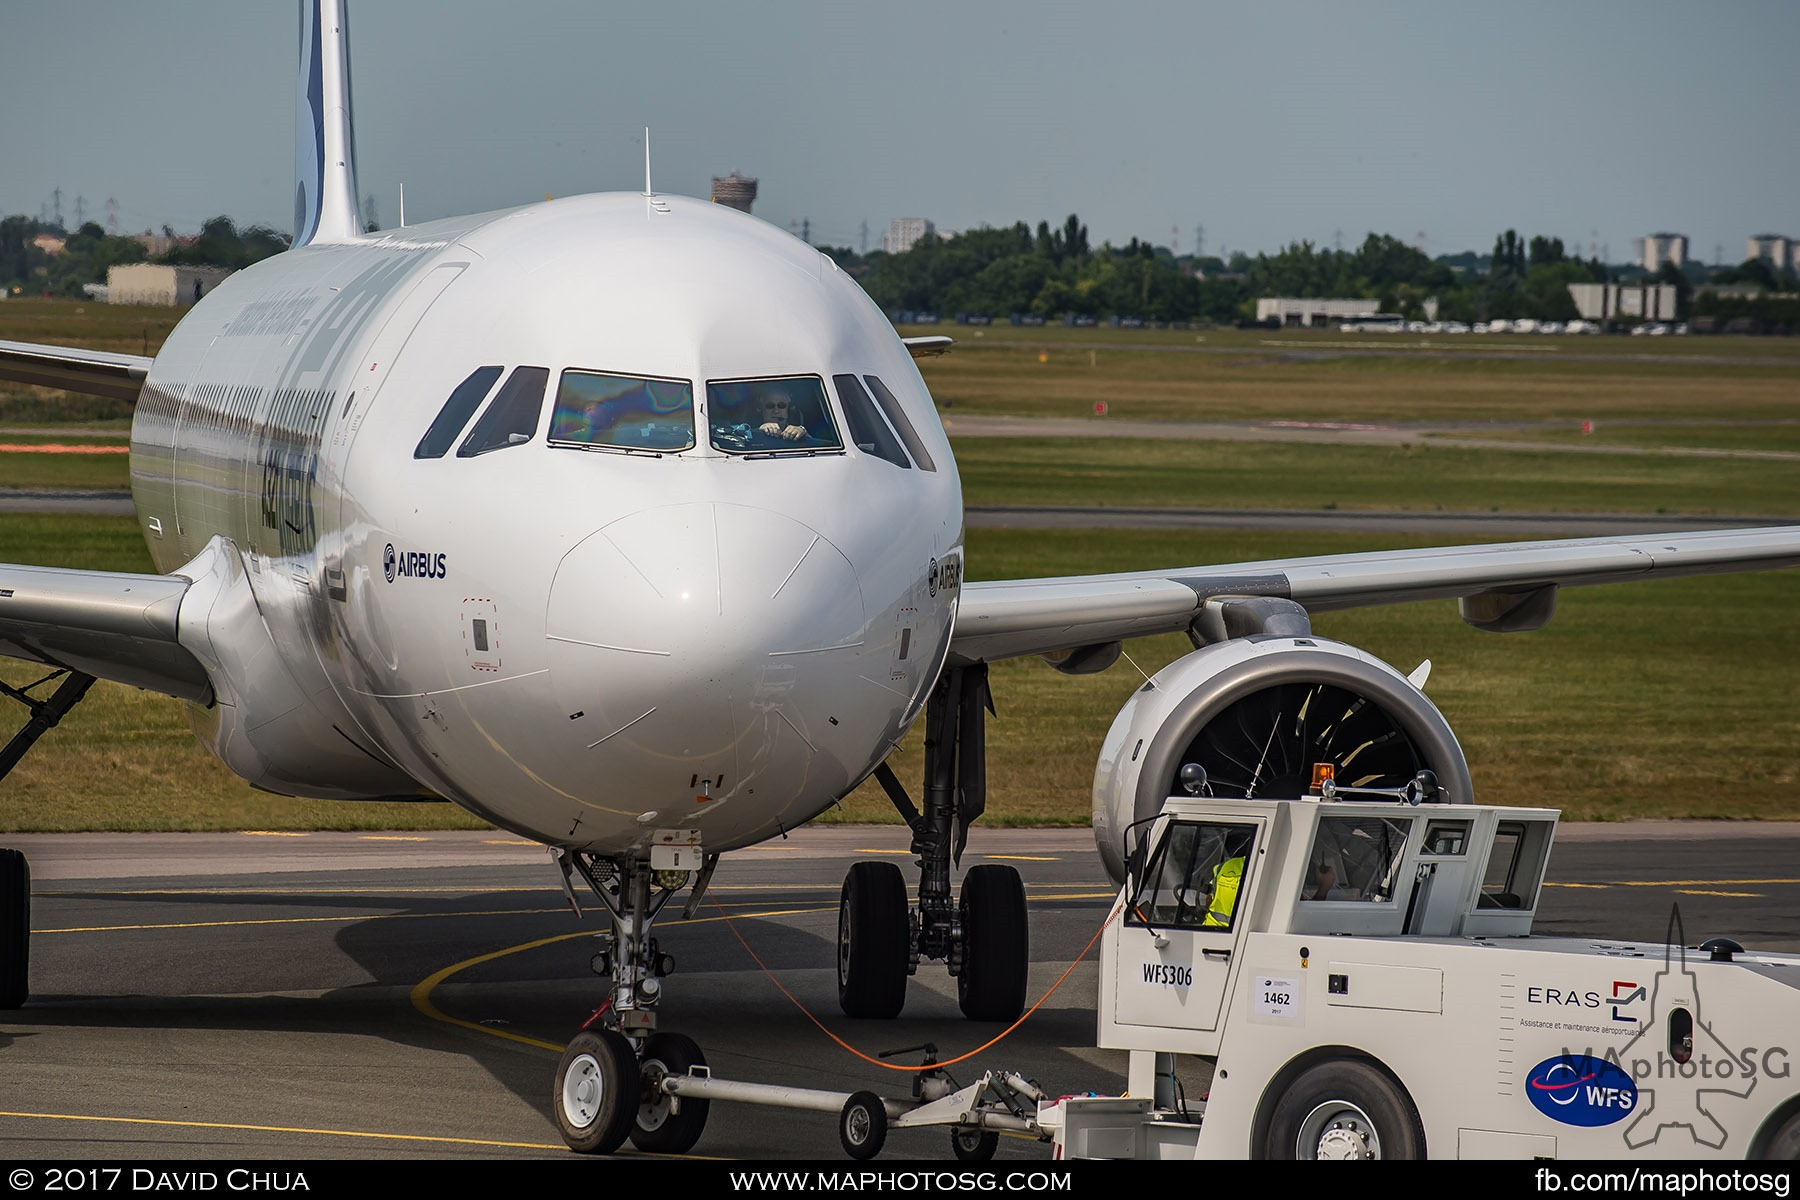 35. Pilot of the Airbus A320neo looks on as the aircraft is towed back to the Static Display Area.